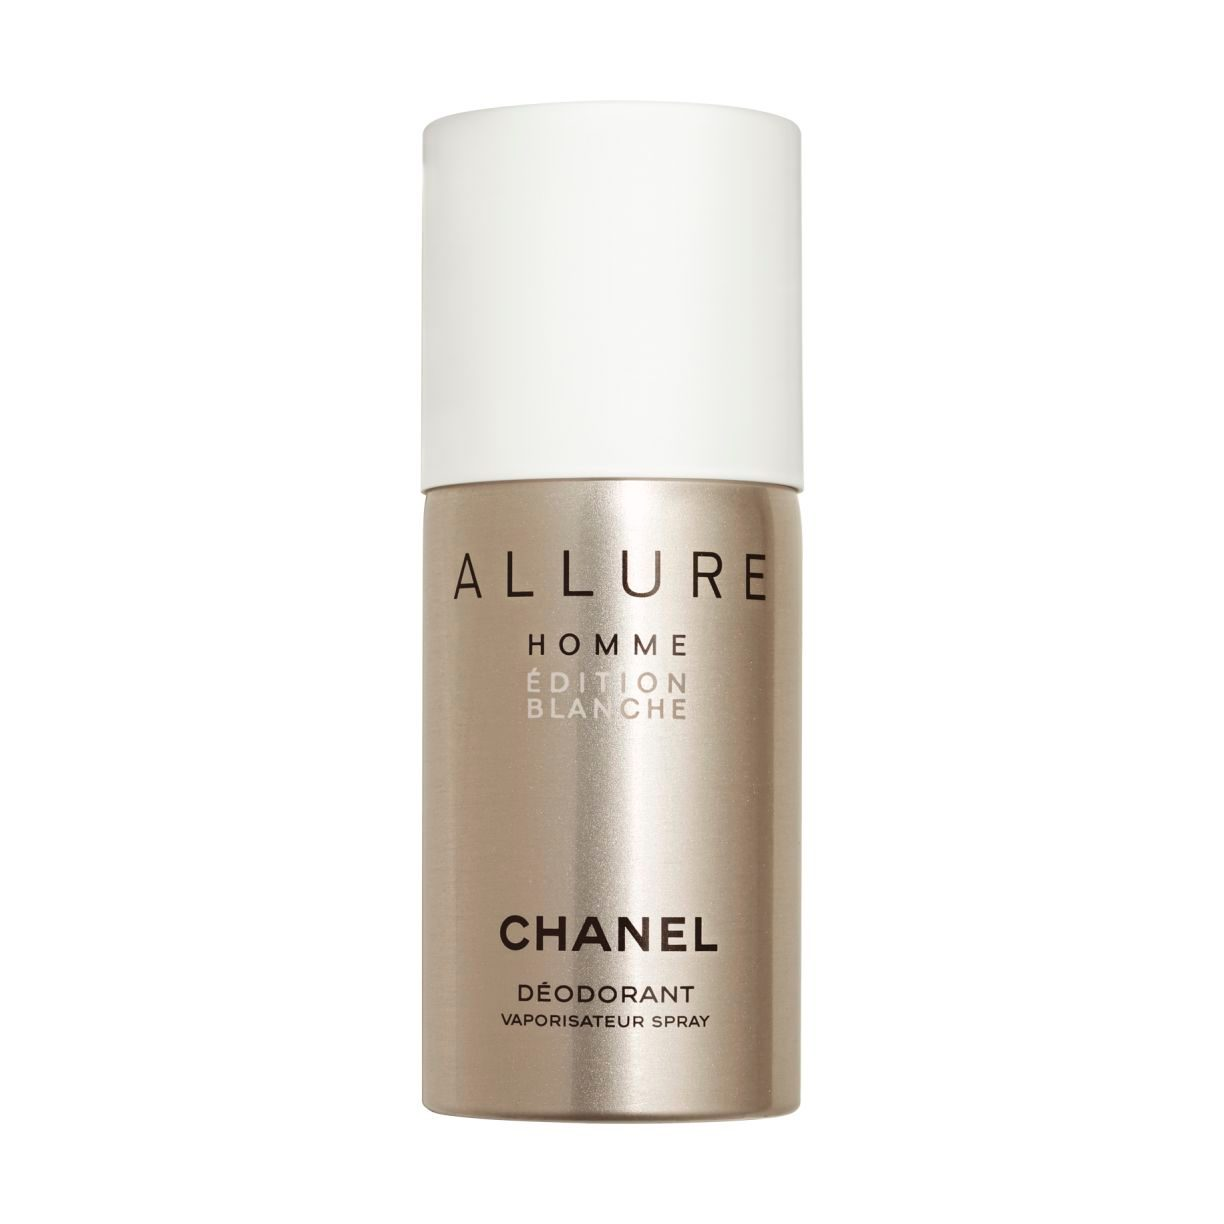 ALLURE HOMME ÉDITION BLANCHE بخاخ مزيل للرائحة